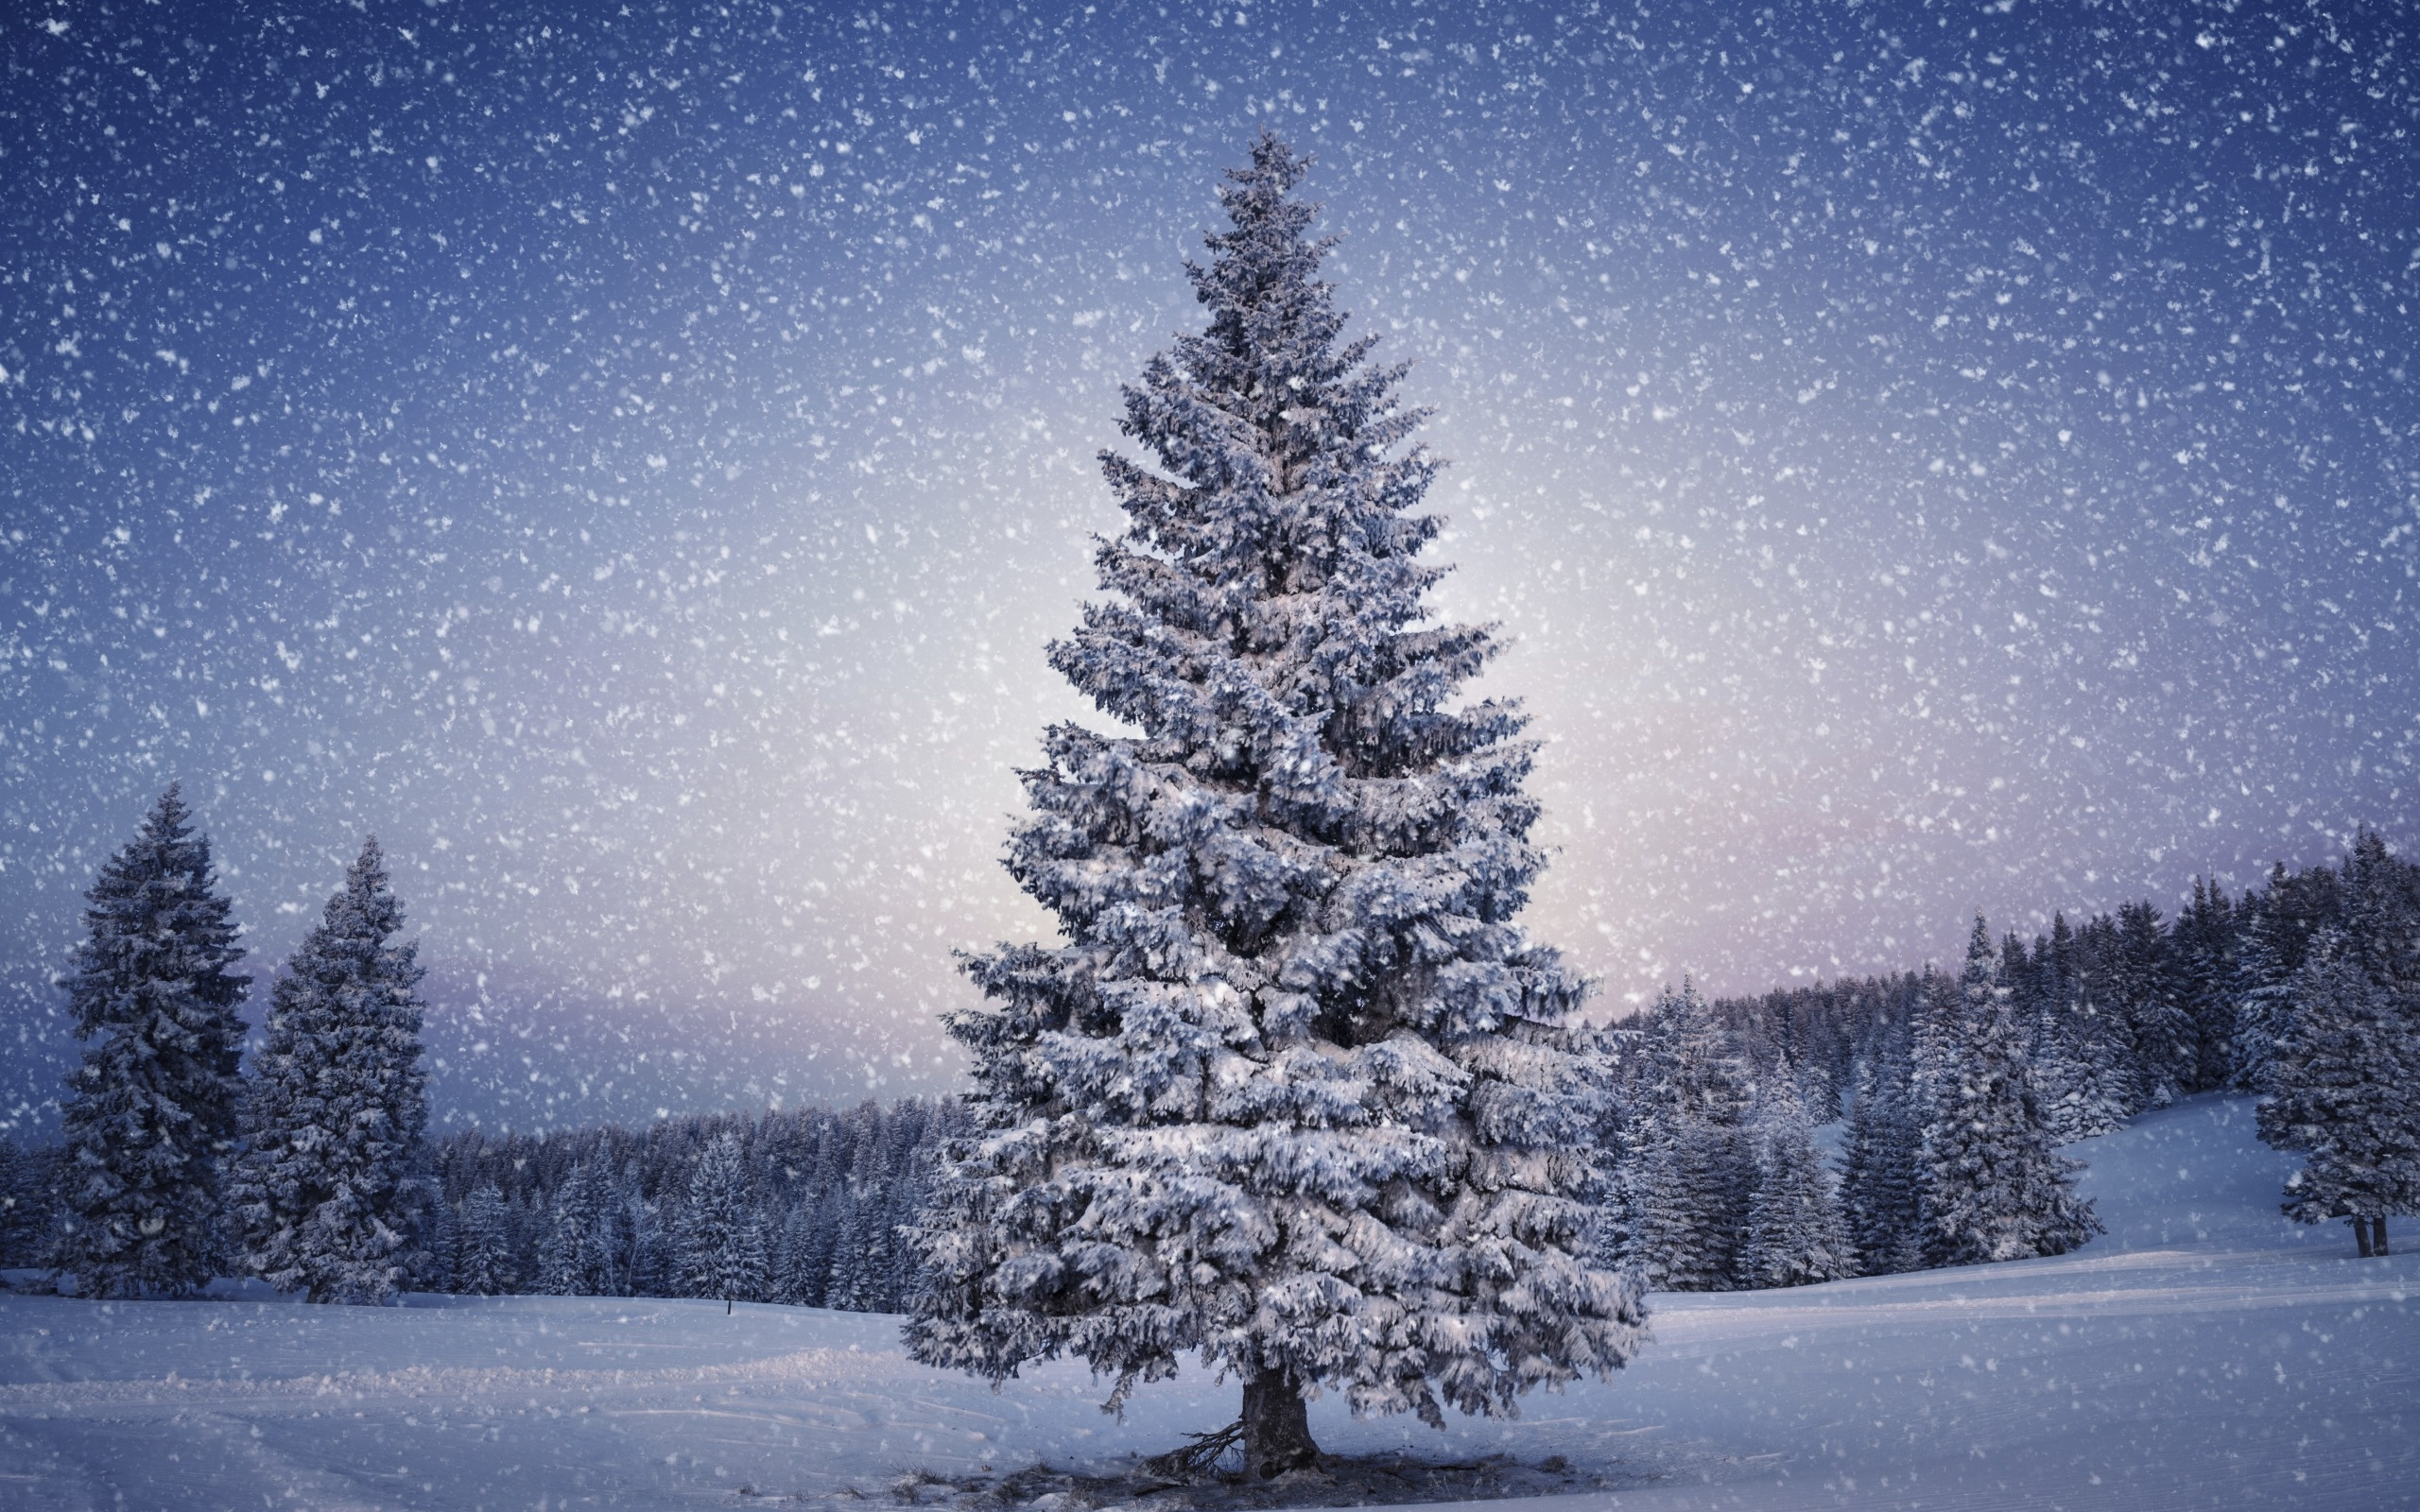 Christmas Tree Winter Wallpapers - Snow Christmas Tree Background - HD Wallpaper